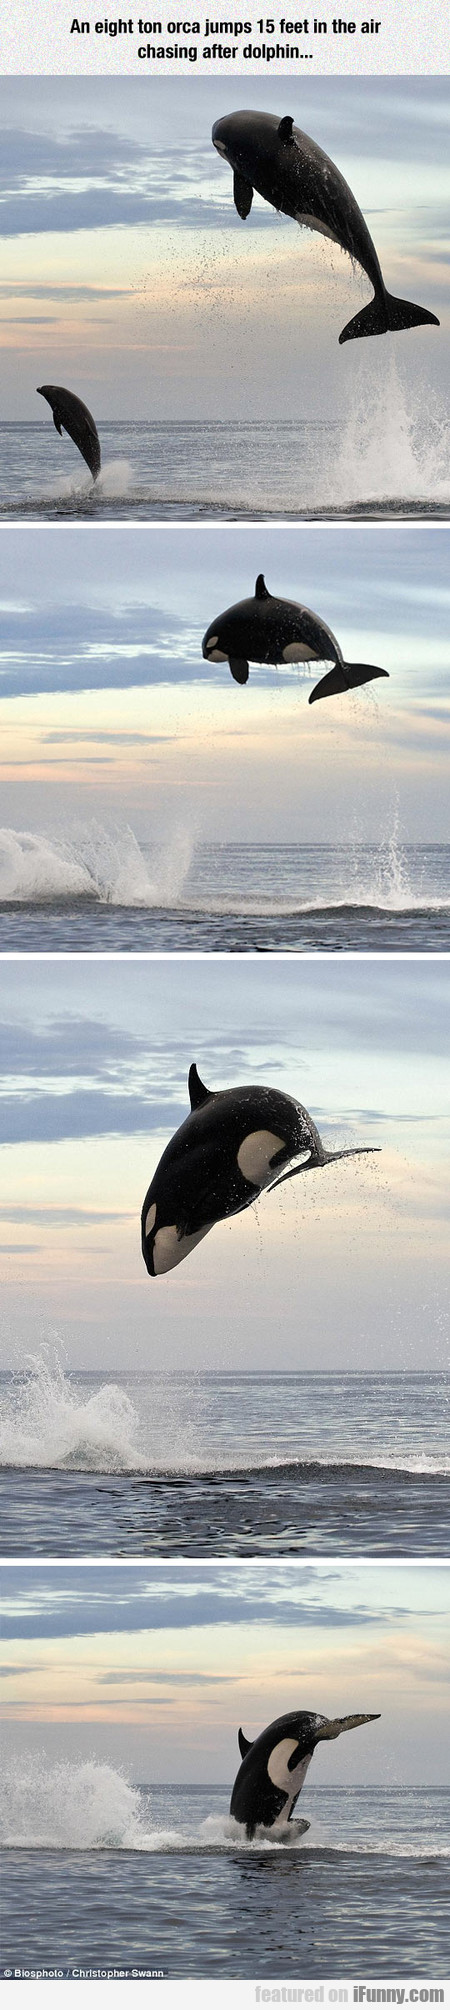 An Eight Ton Orca Jumps 15 Feet In The Air